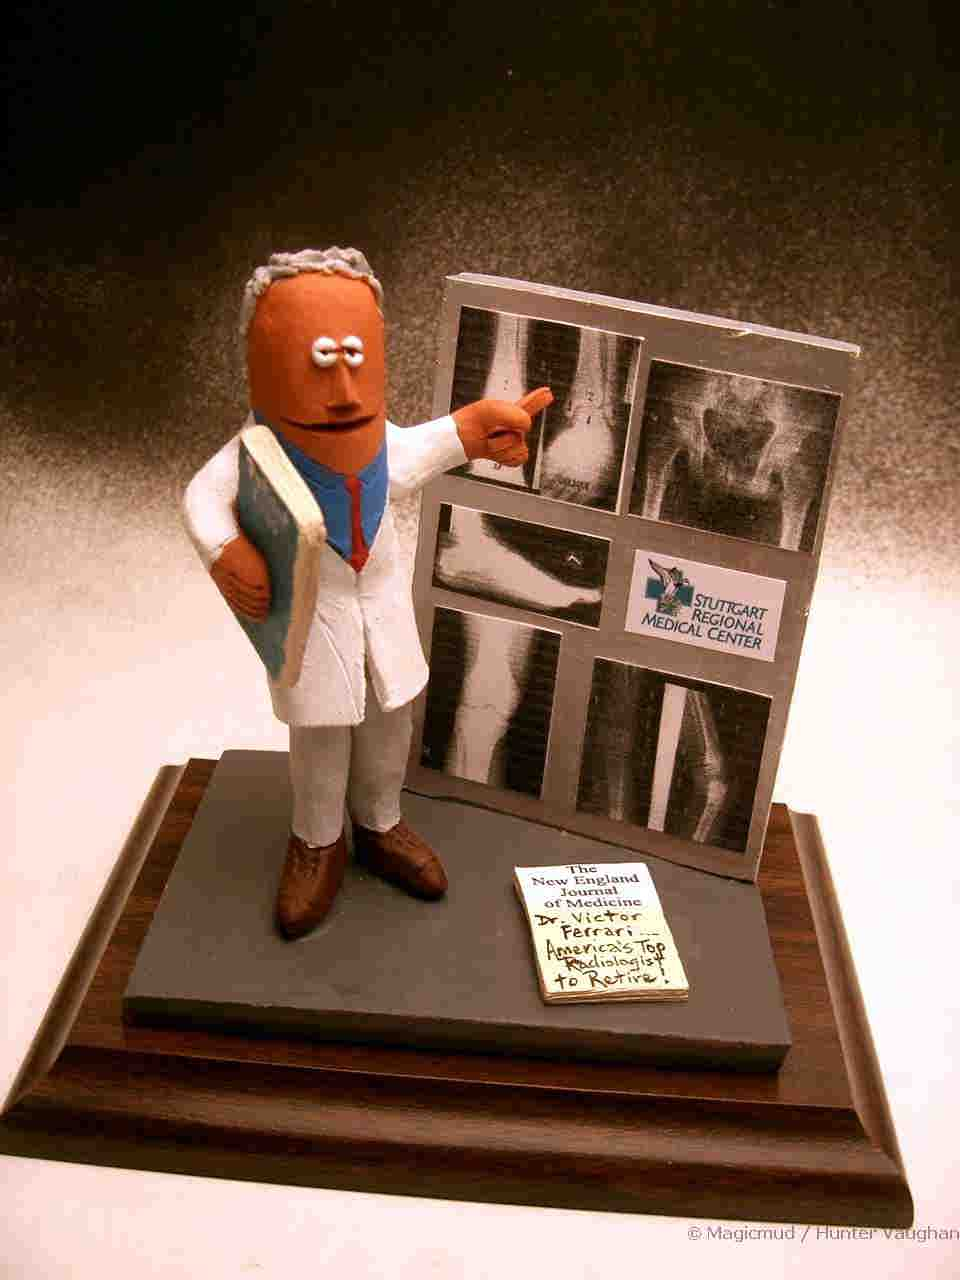 personalized gifts for doctors  surgeons  physicians